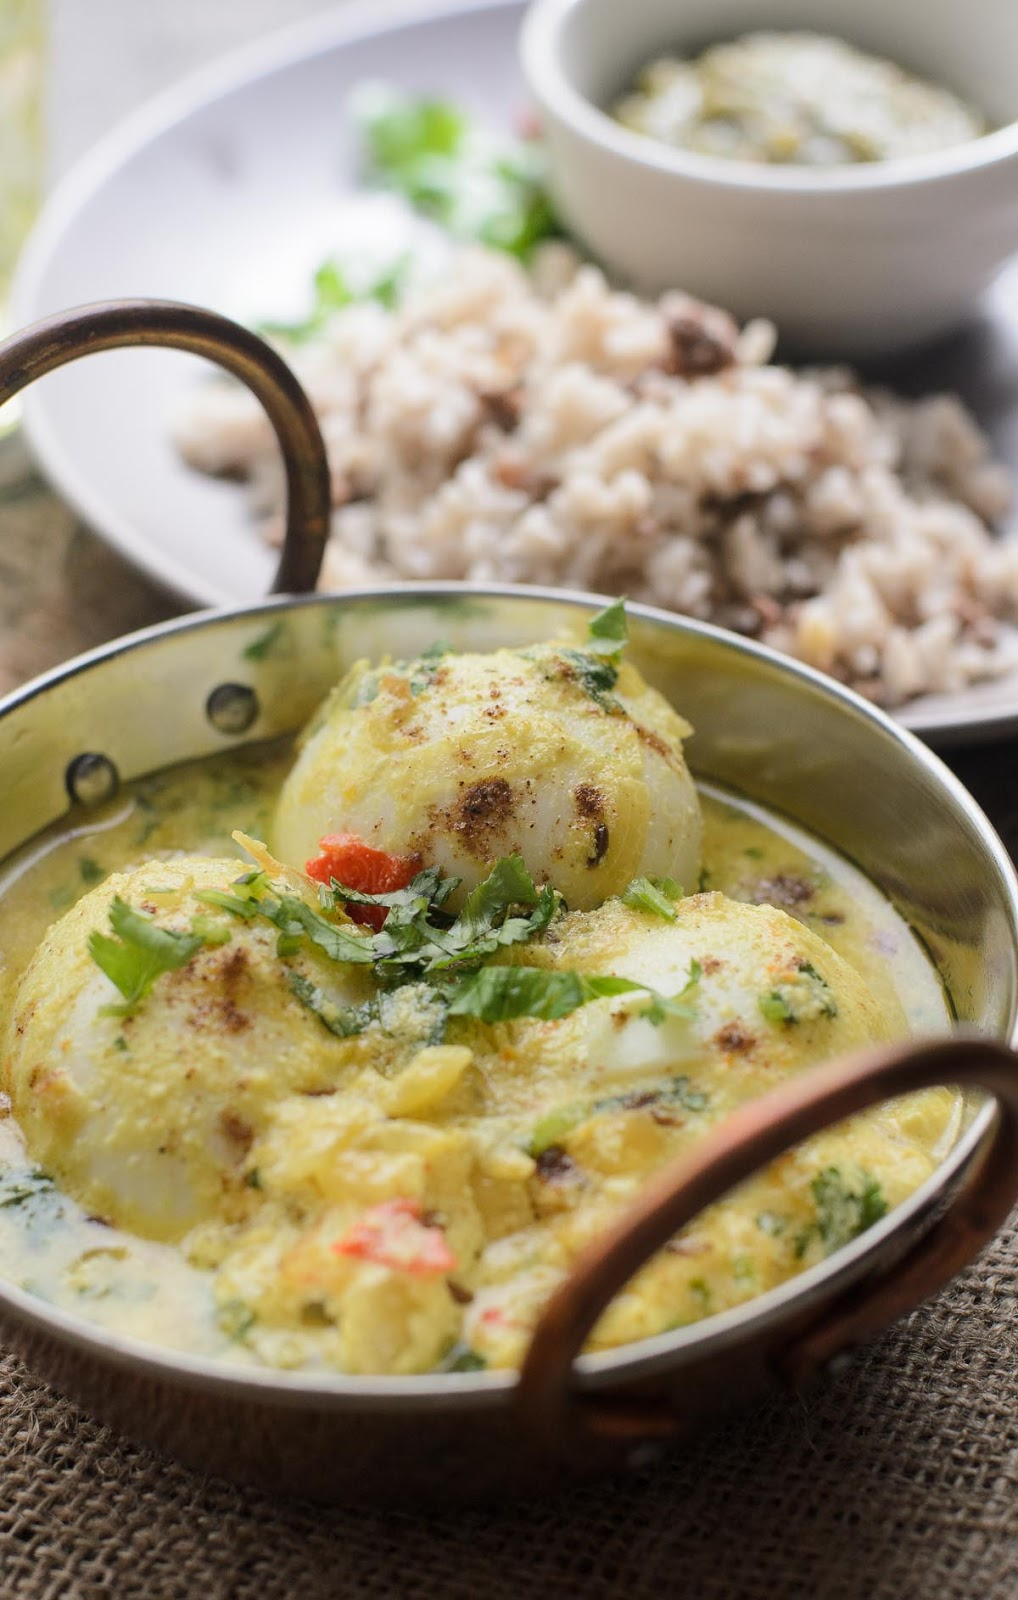 Vegetarian Eggs in Spiced Yogurt Sauce